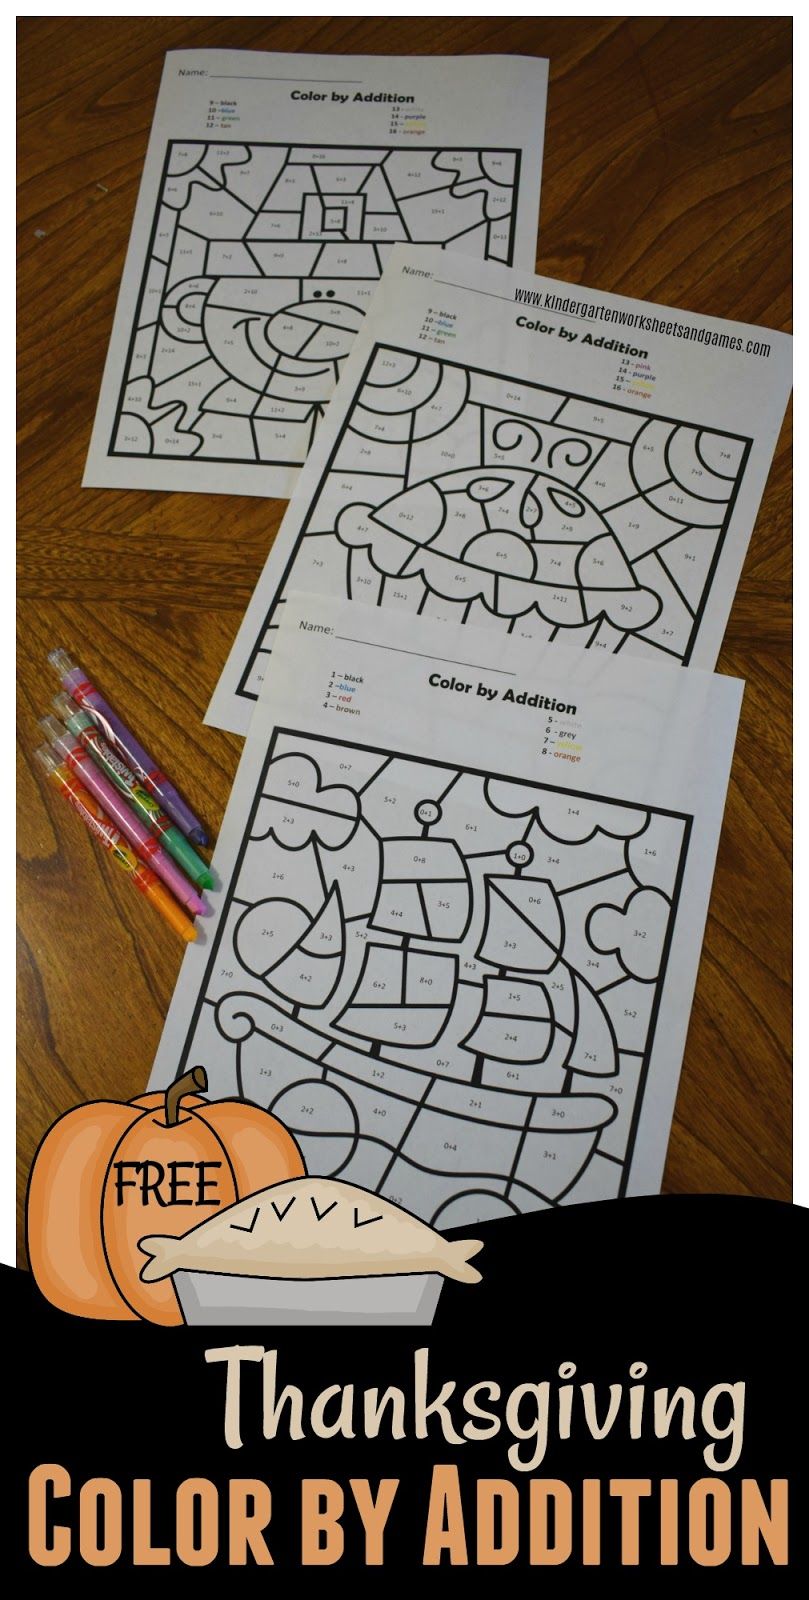 Addition Worksheets thanksgiving addition worksheets : Kindergarten Worksheets and Games: FREE Thanksgiving Color by Addition